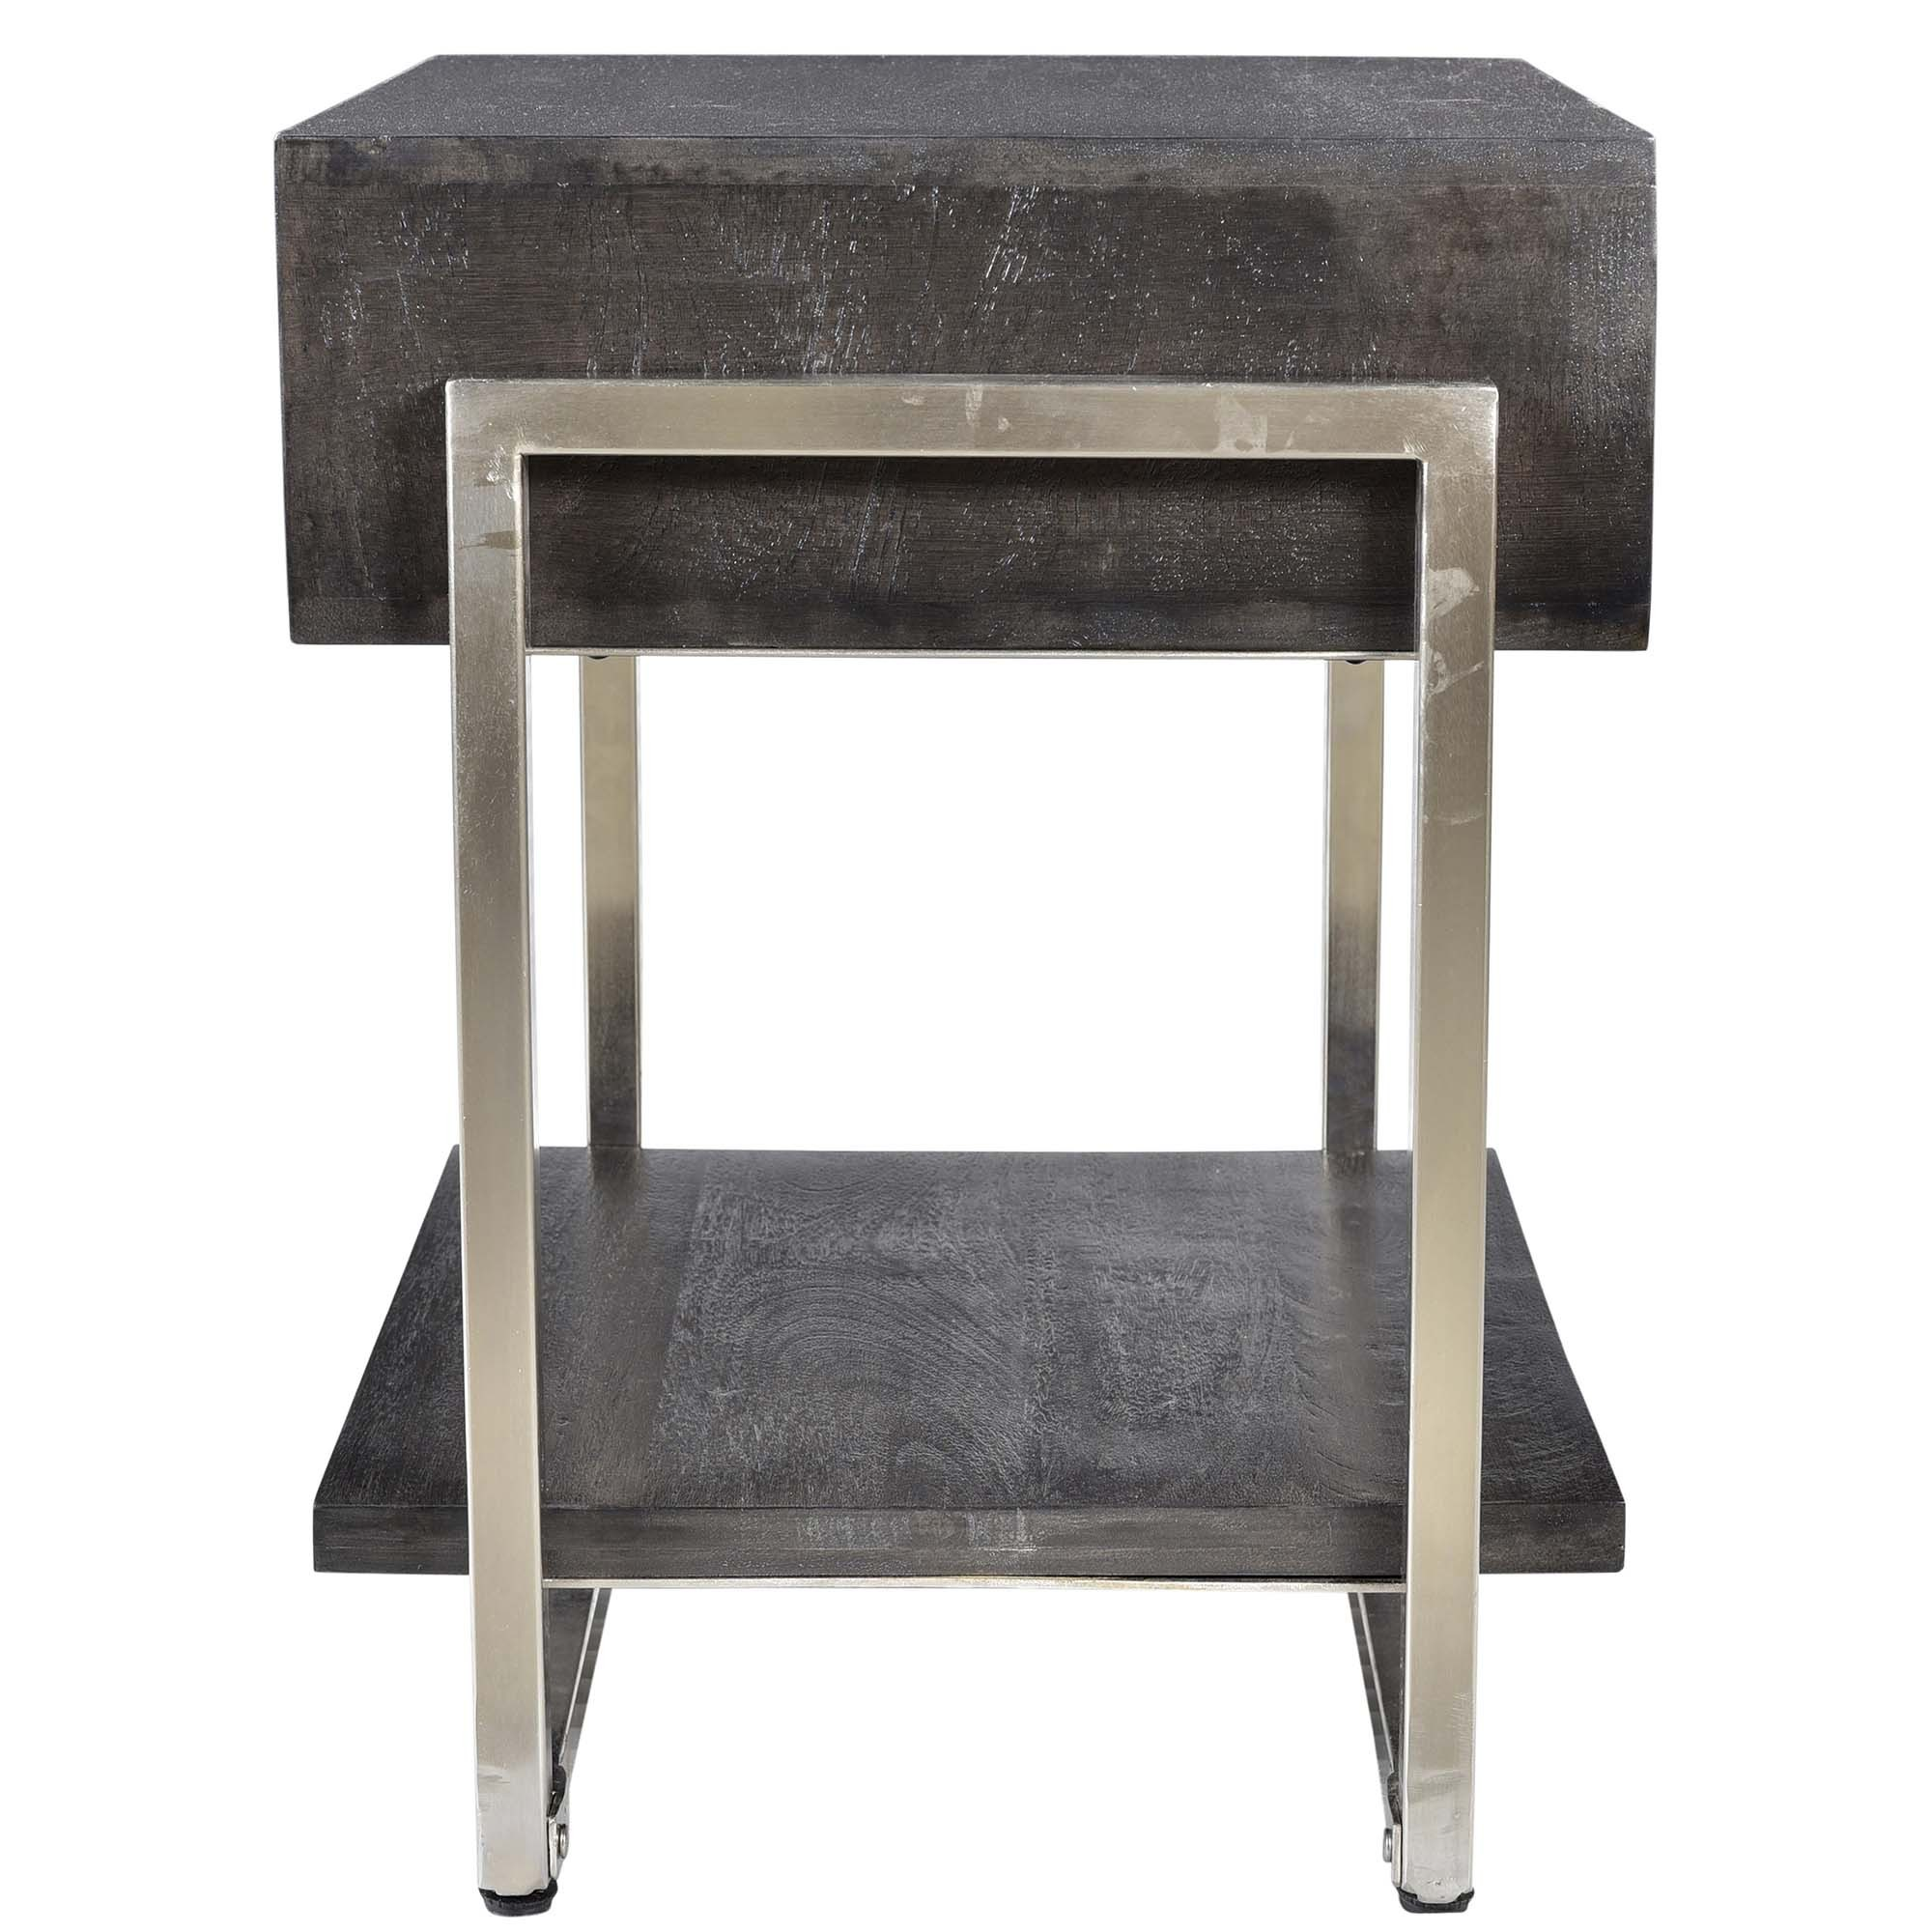 jonas accent table dark grey tables furniture gray ikea storage boxes metal threshold bar black outdoor umbrella long skinny side linens and glass sofa wood coffee work acrylic